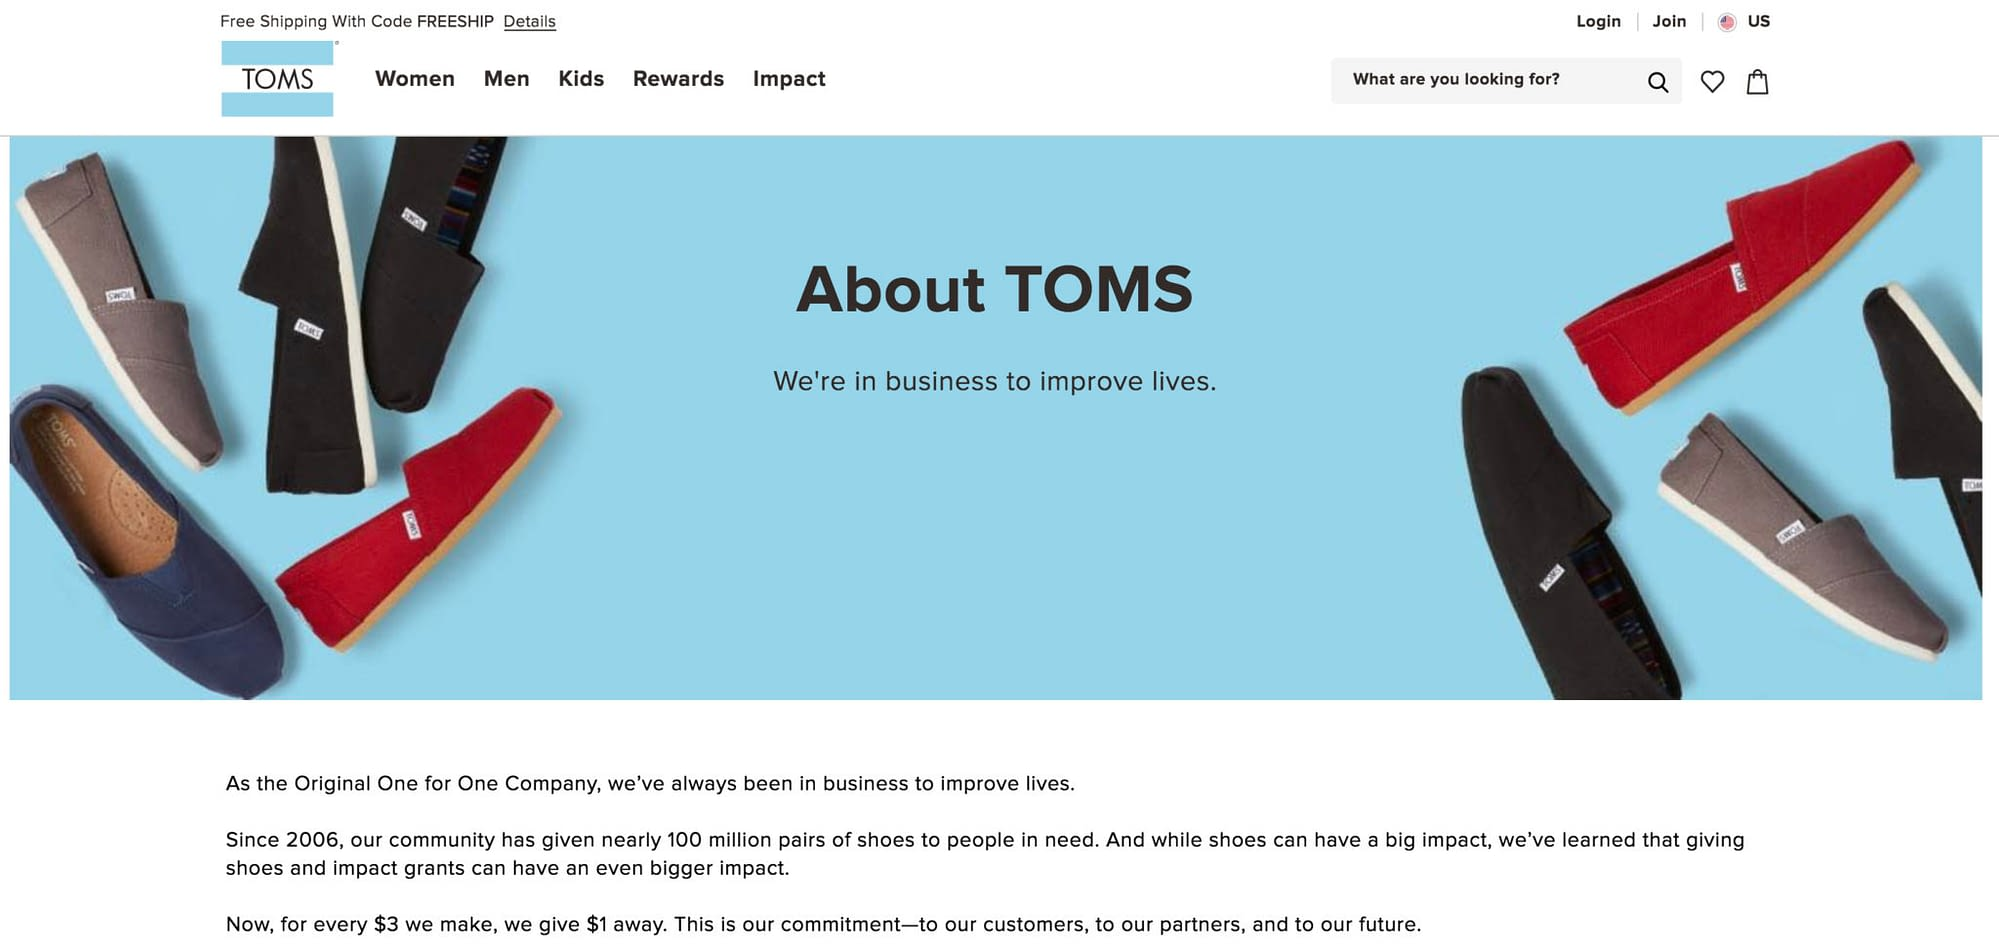 About Tom's brand from their website